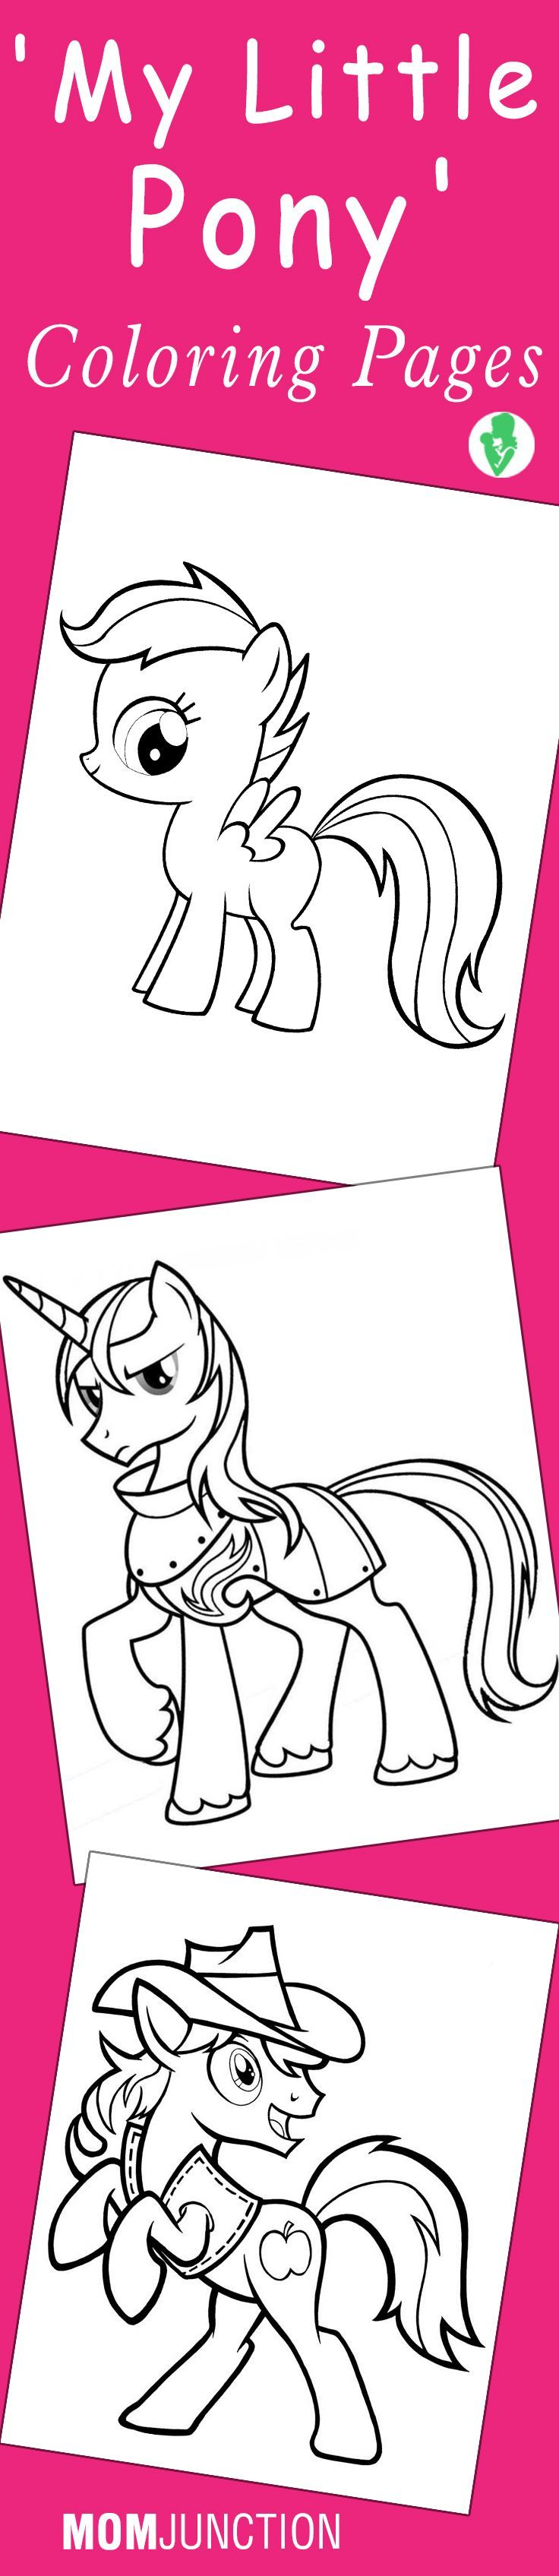 Top 55 \'My Little Pony\' Coloring Pages Your Toddler Will Love To ...